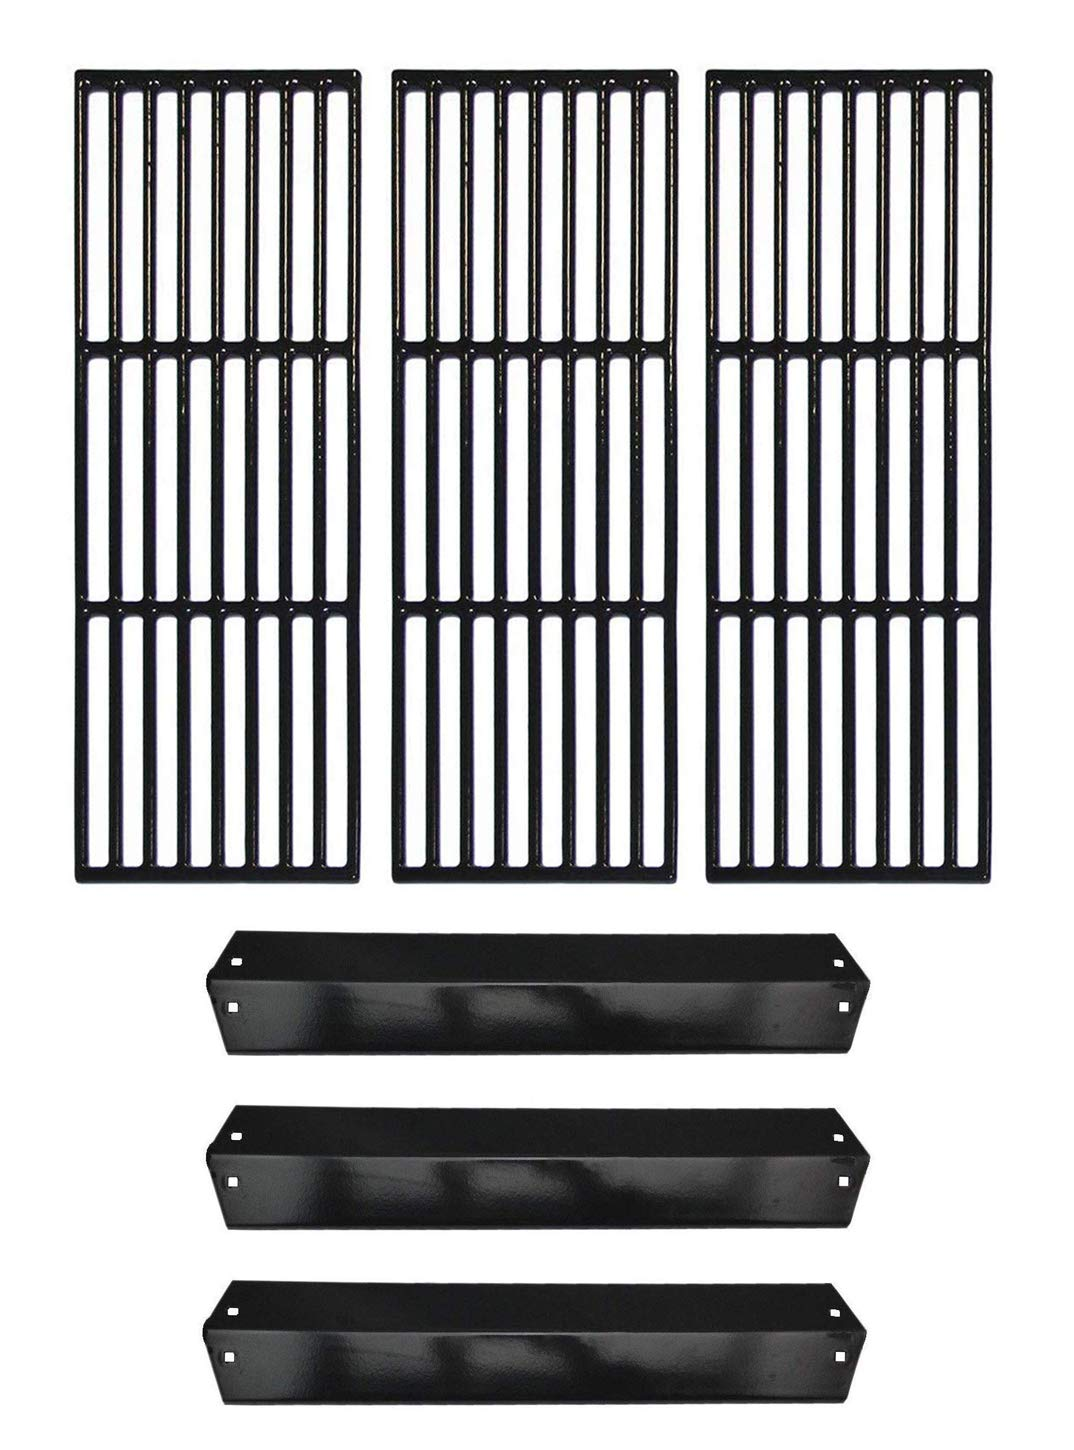 Hongso Repair Kit Porcelain Coated Cast Iron Grill Grates and Porcelain Steel Heat Plates Replacement for Char Griller Models 5050 3001 5650 5072 3030 4208 4000 3008, King Griller 3008 5252 Gas Grills